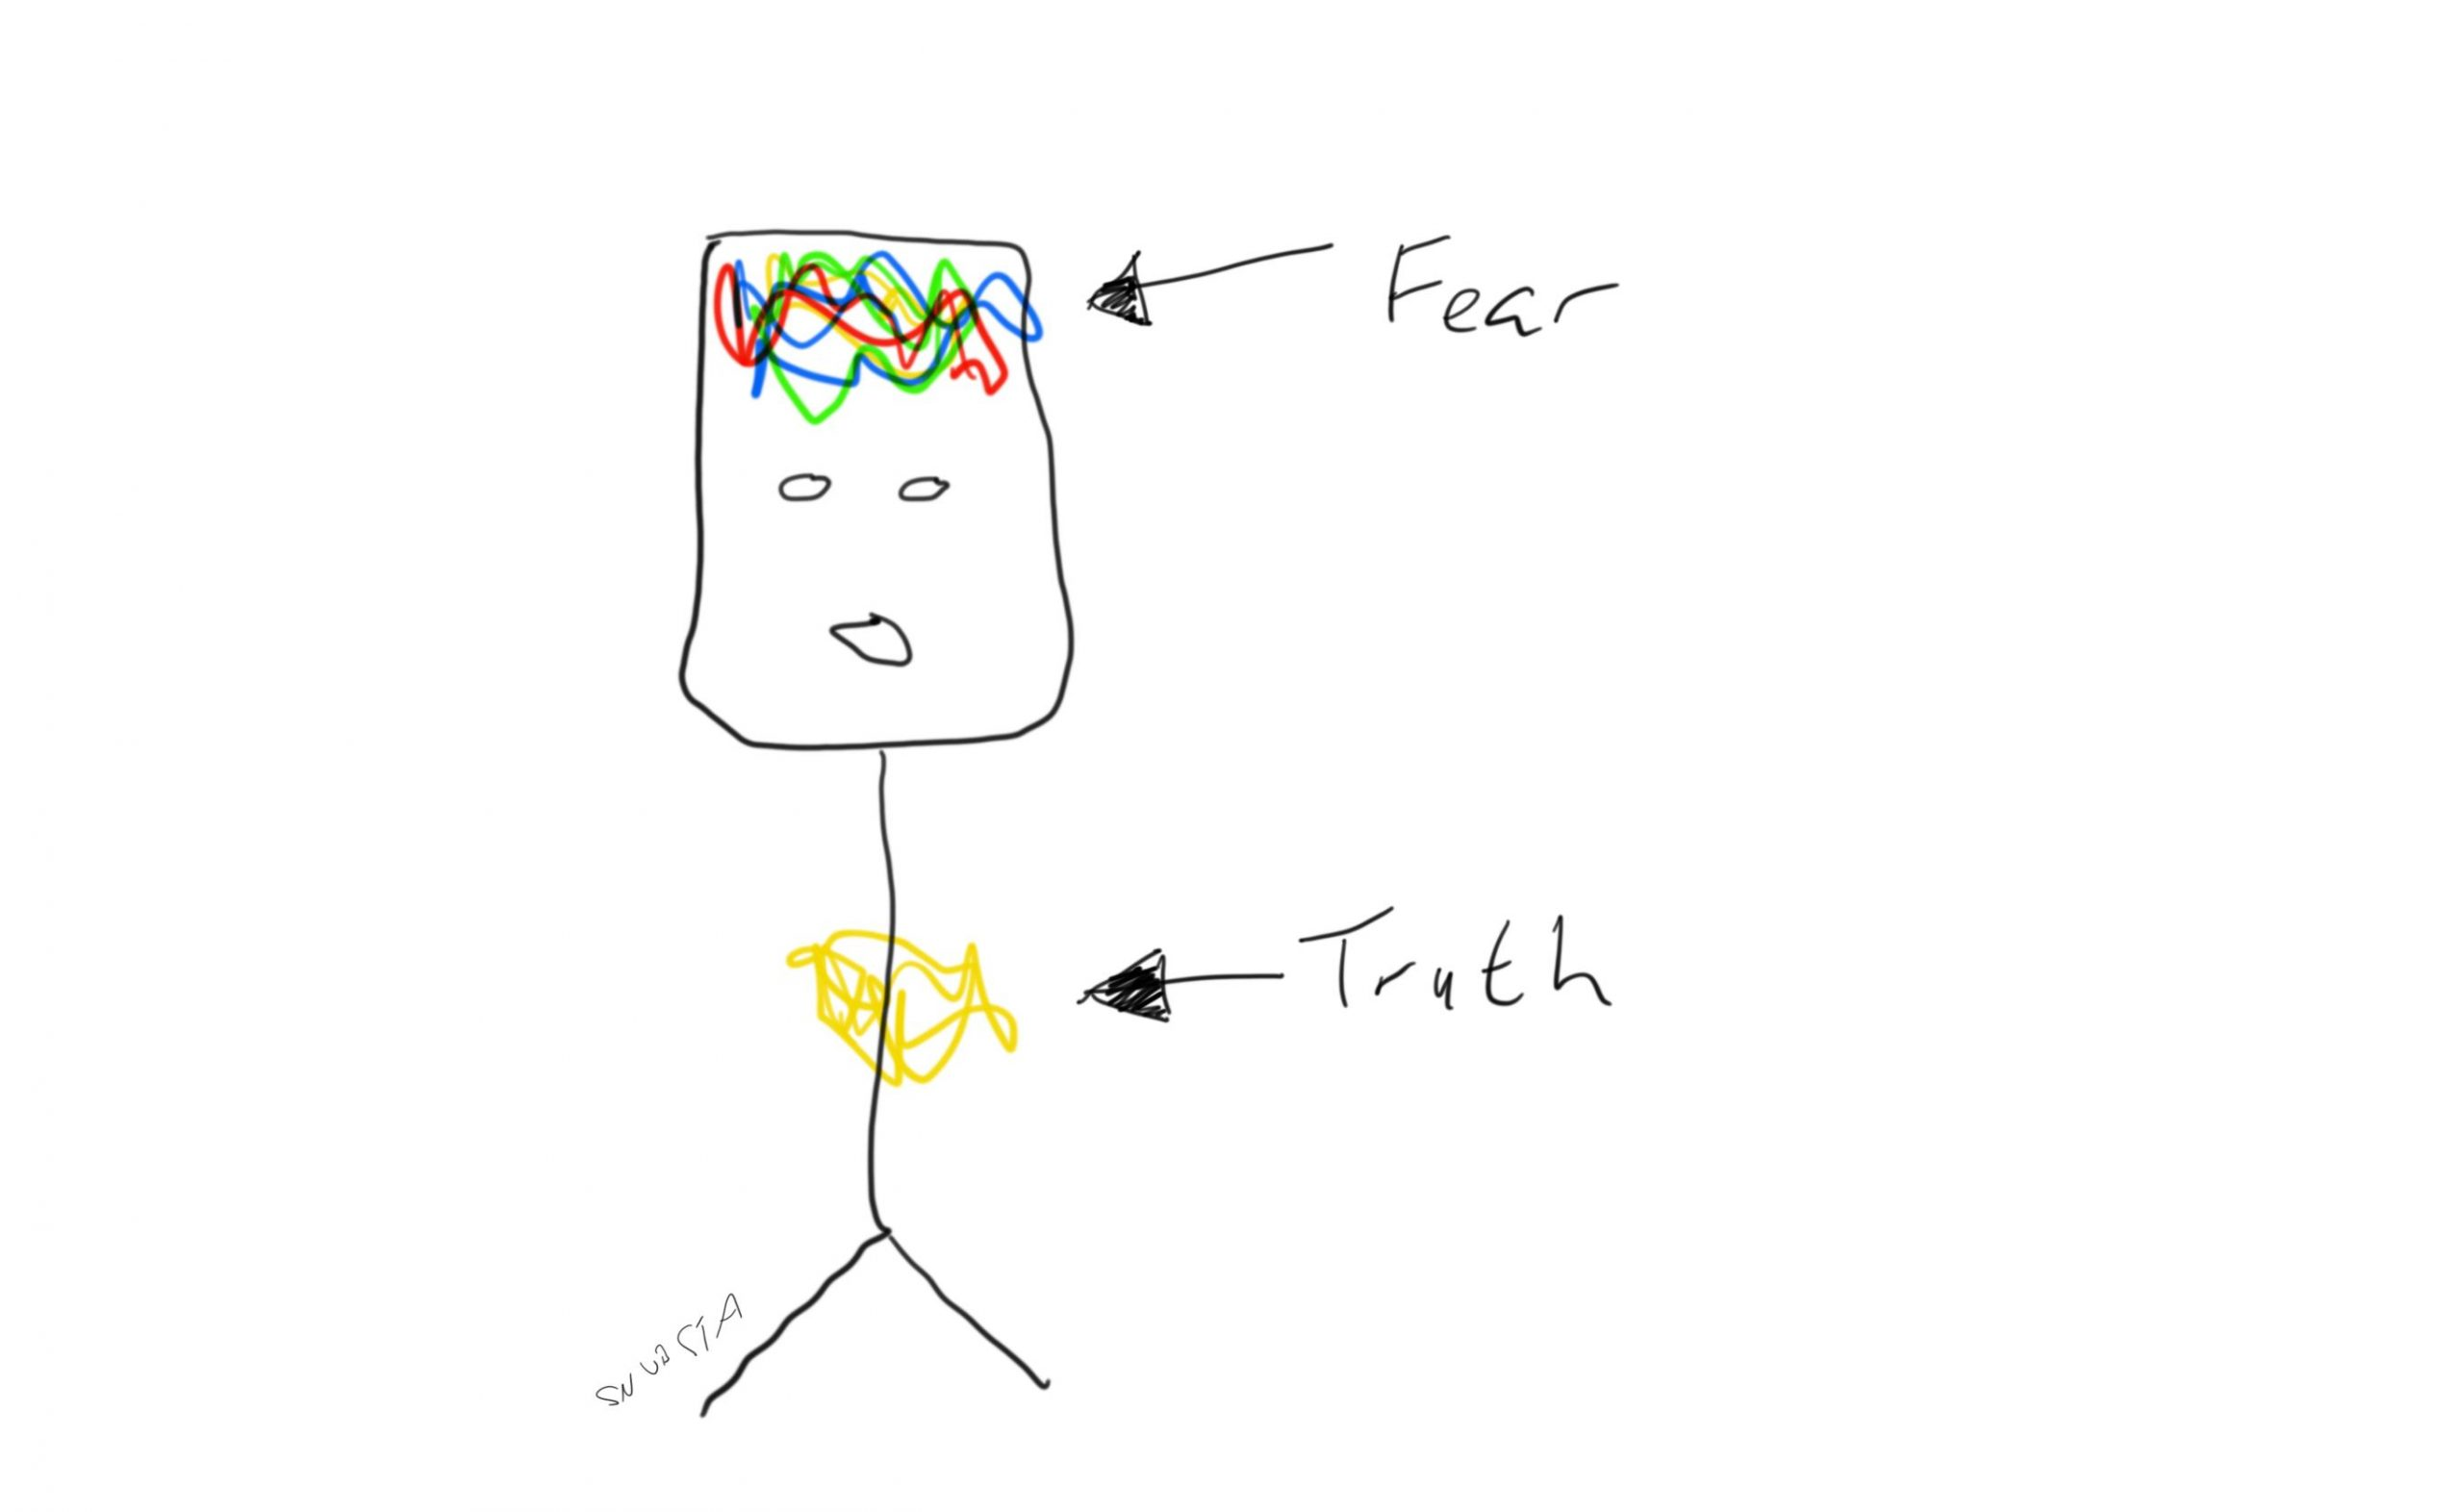 Fear and truth